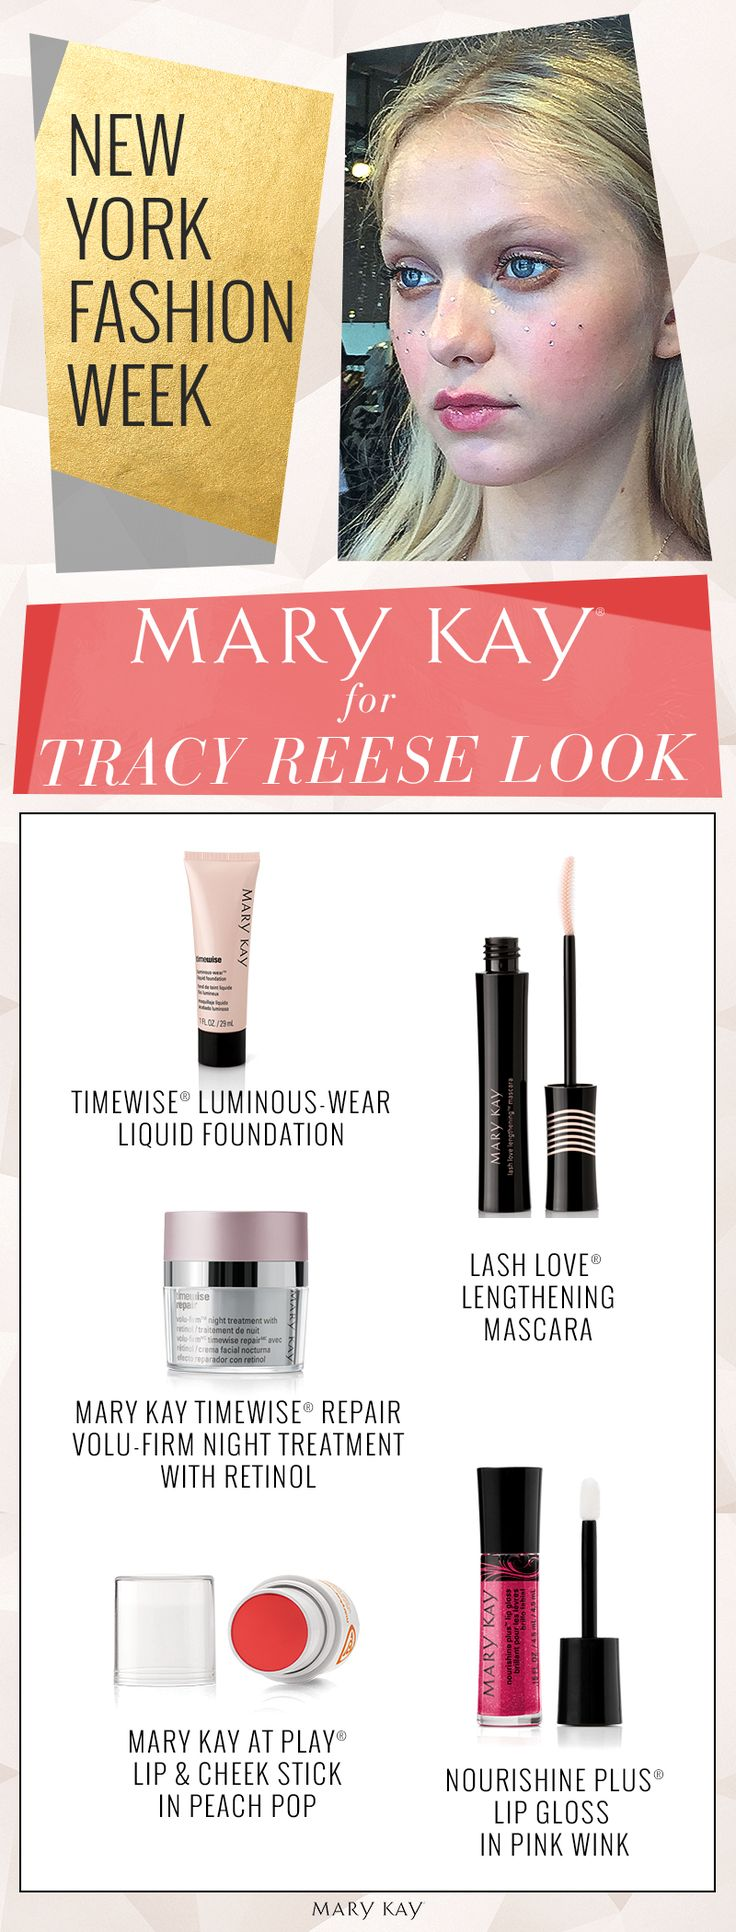 456 best Mary Kay images on Pinterest | Mary kay, Direct sales and Pdf